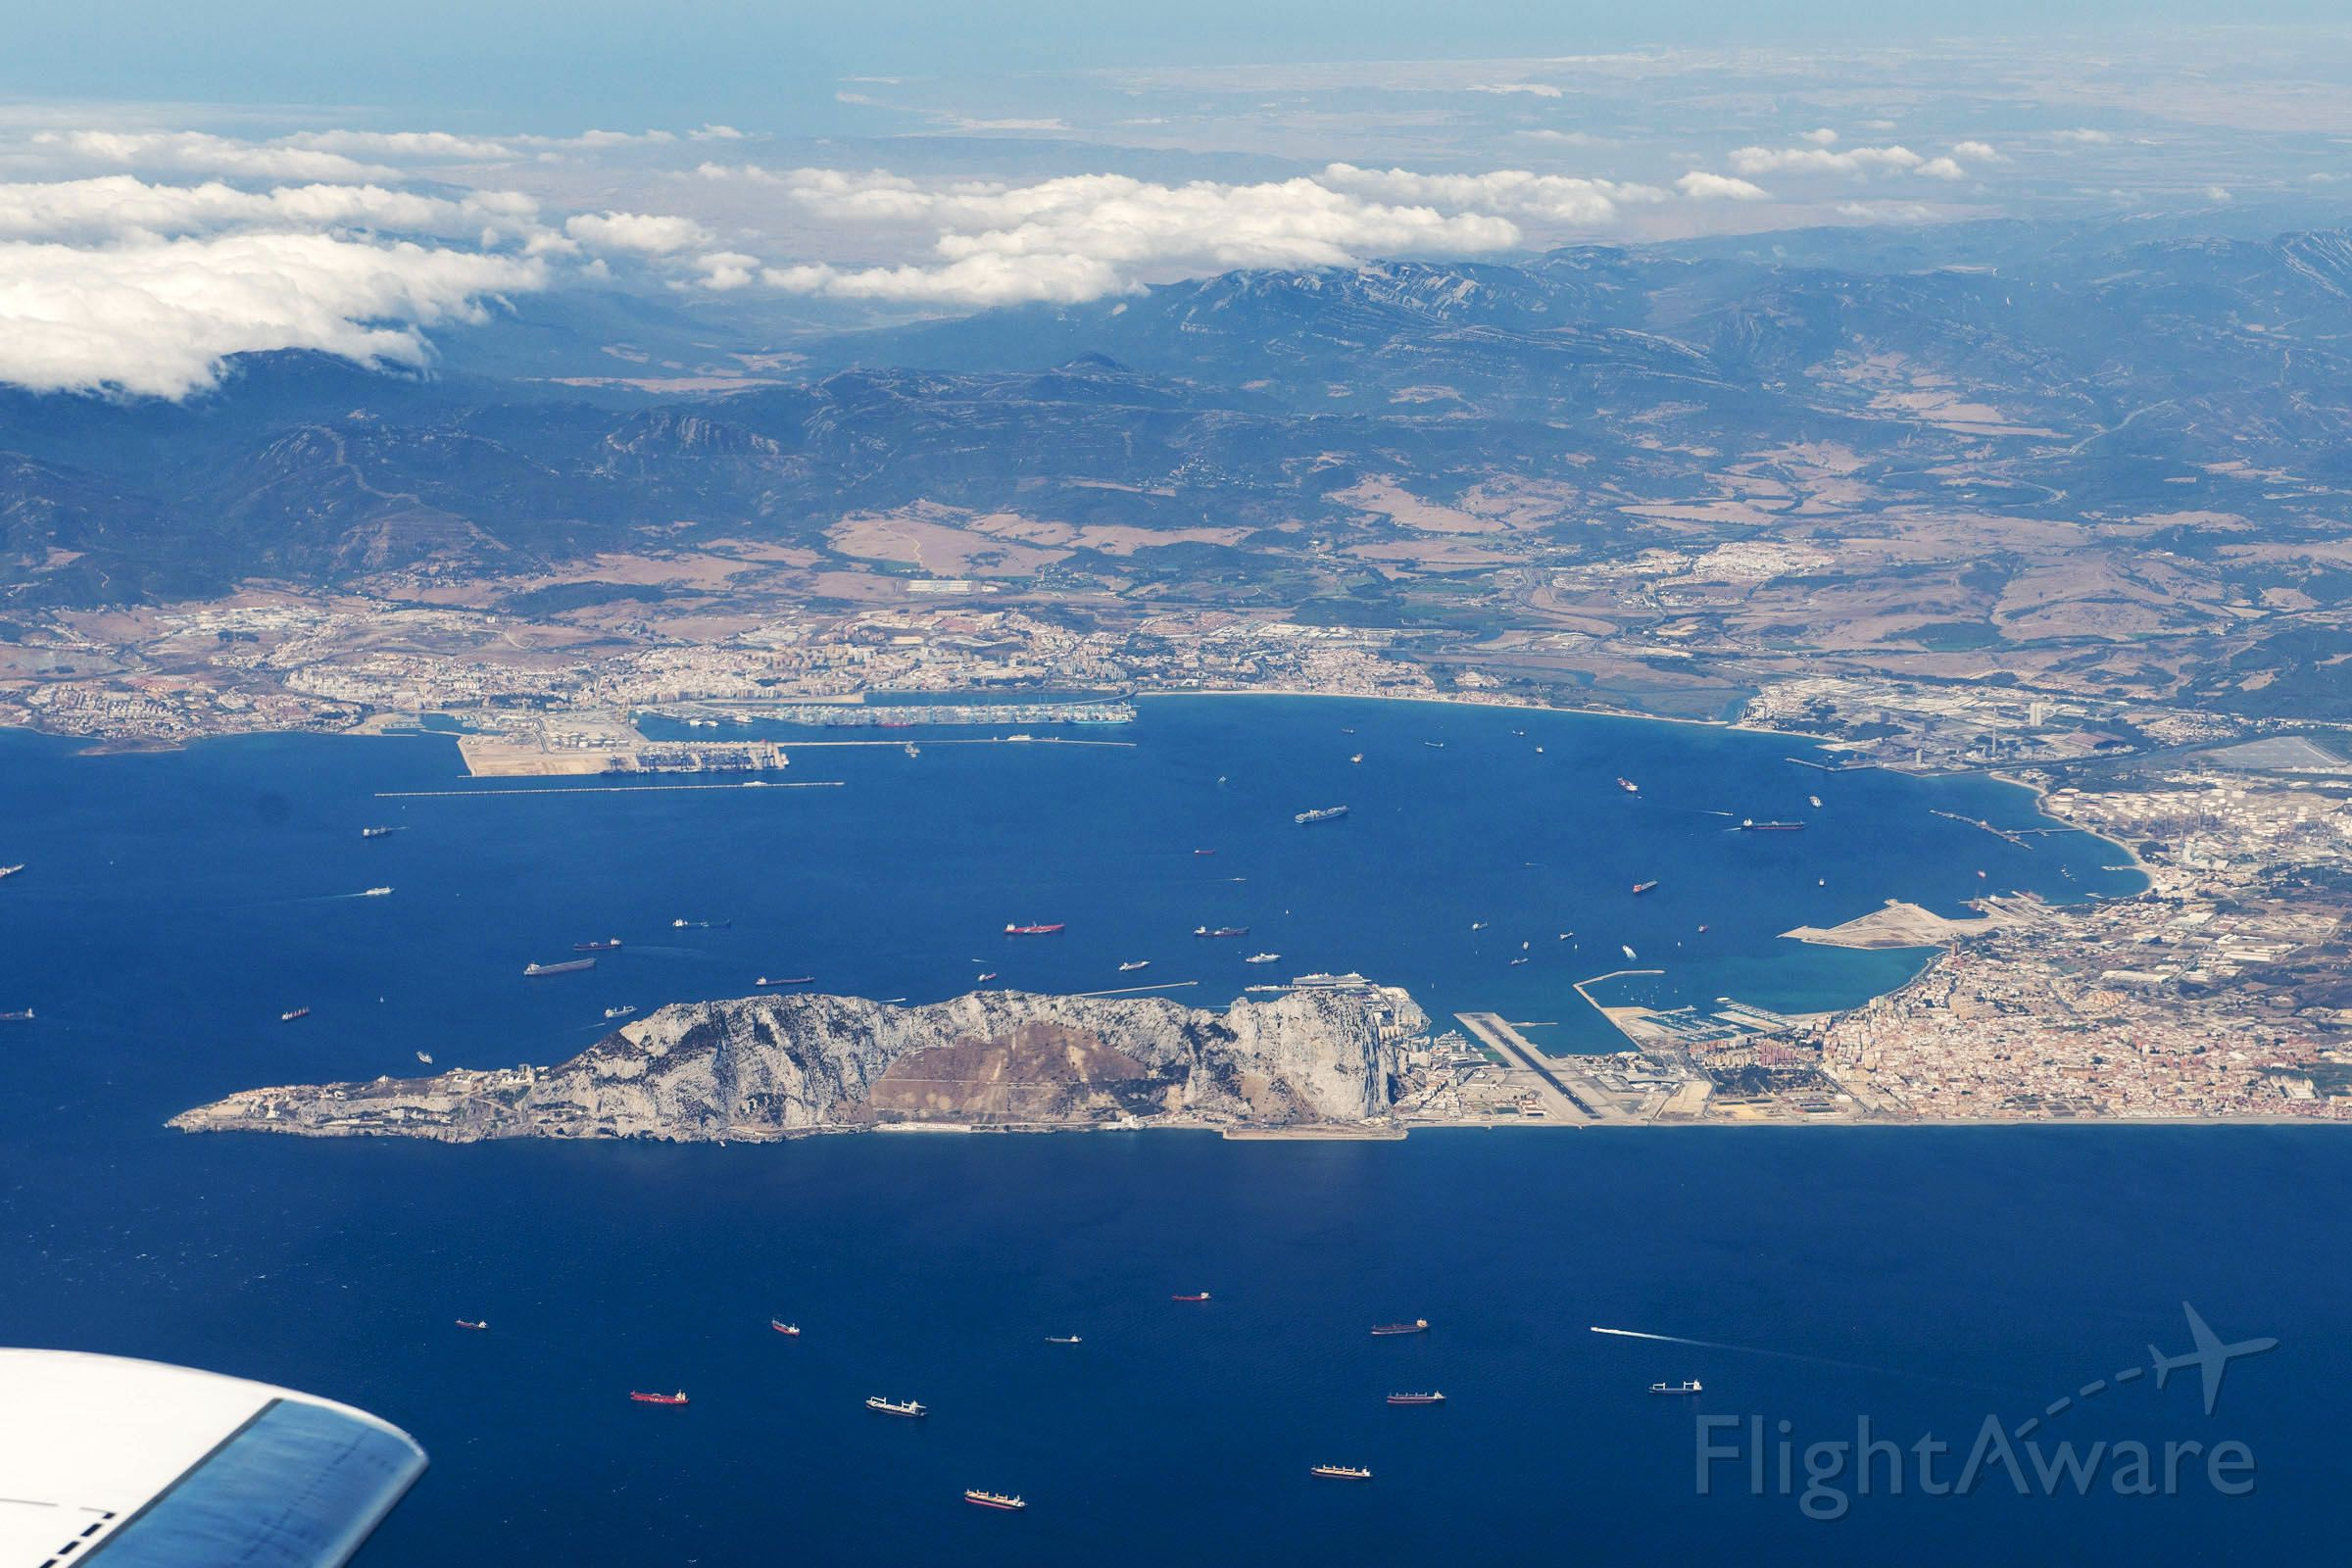 — — - Image taken after take-off from Gibraltar on Falcon 900EX - left turn out from Runway 27 shows great vista of Rock of Gibraltar, Gibraltar Airport with Algiceras Spain under the cloud. We were on route to EGHI.